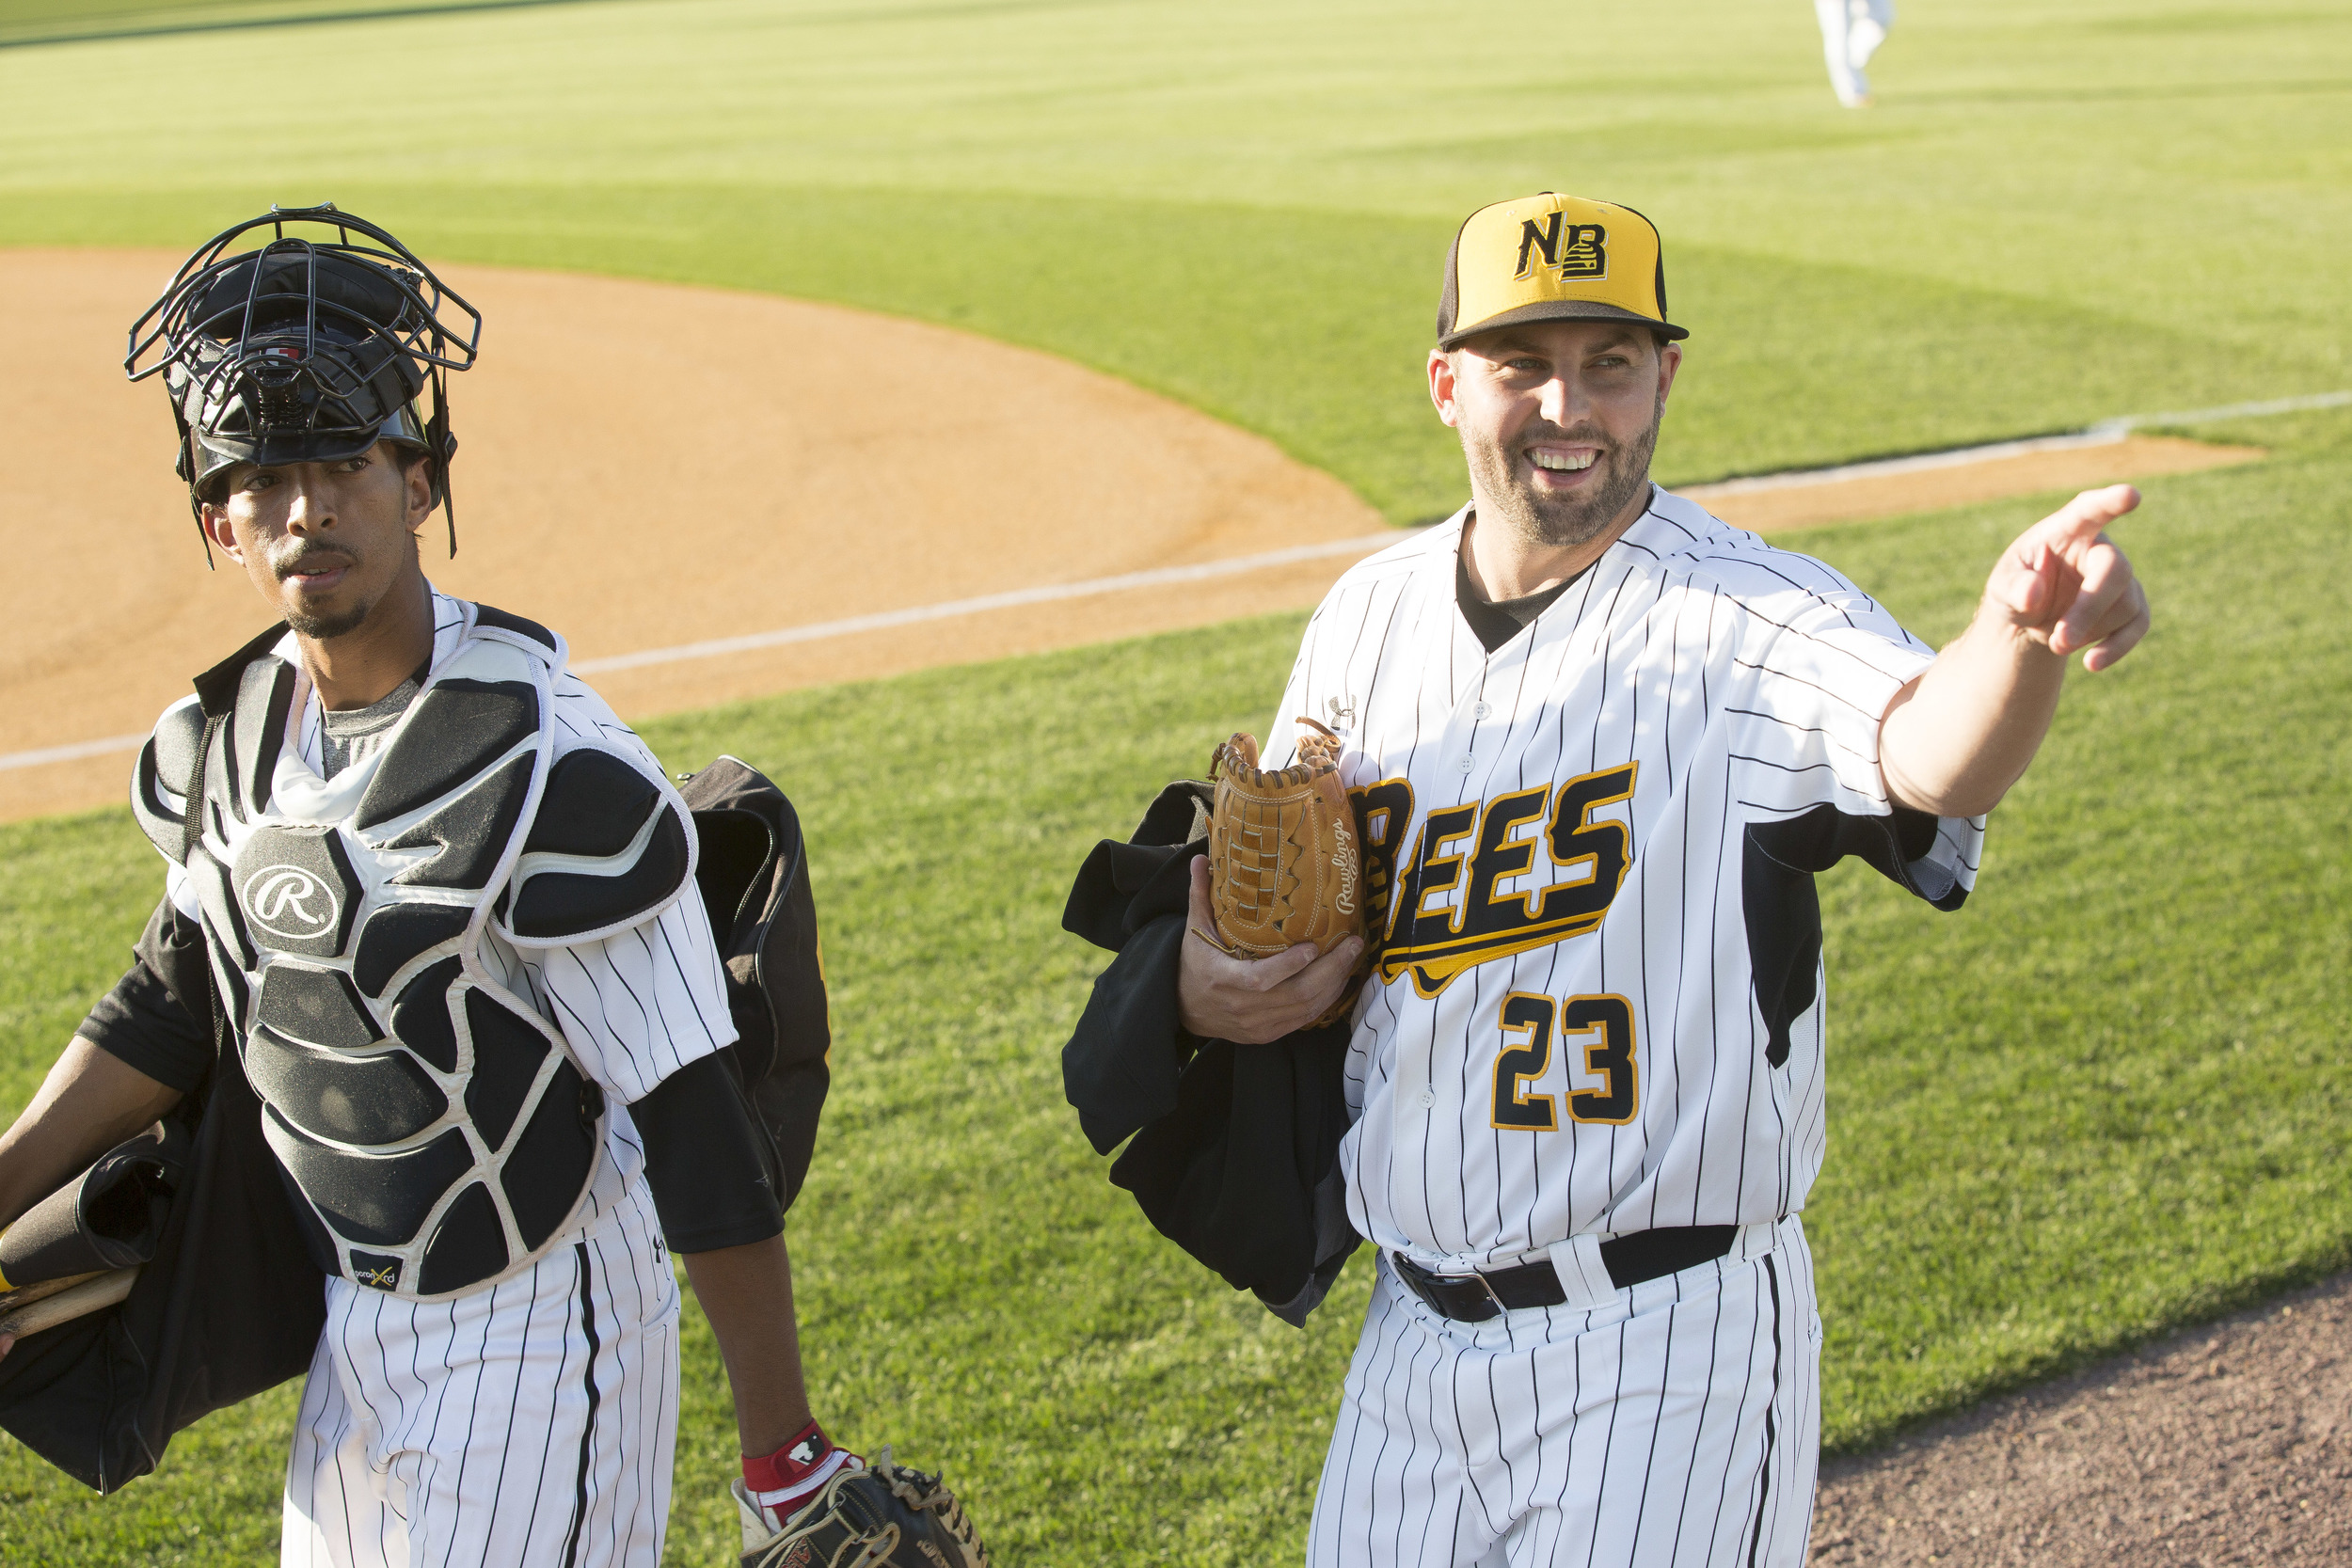 Nick Greenwood, a starting pitcher for the NB Bees and his catcher.